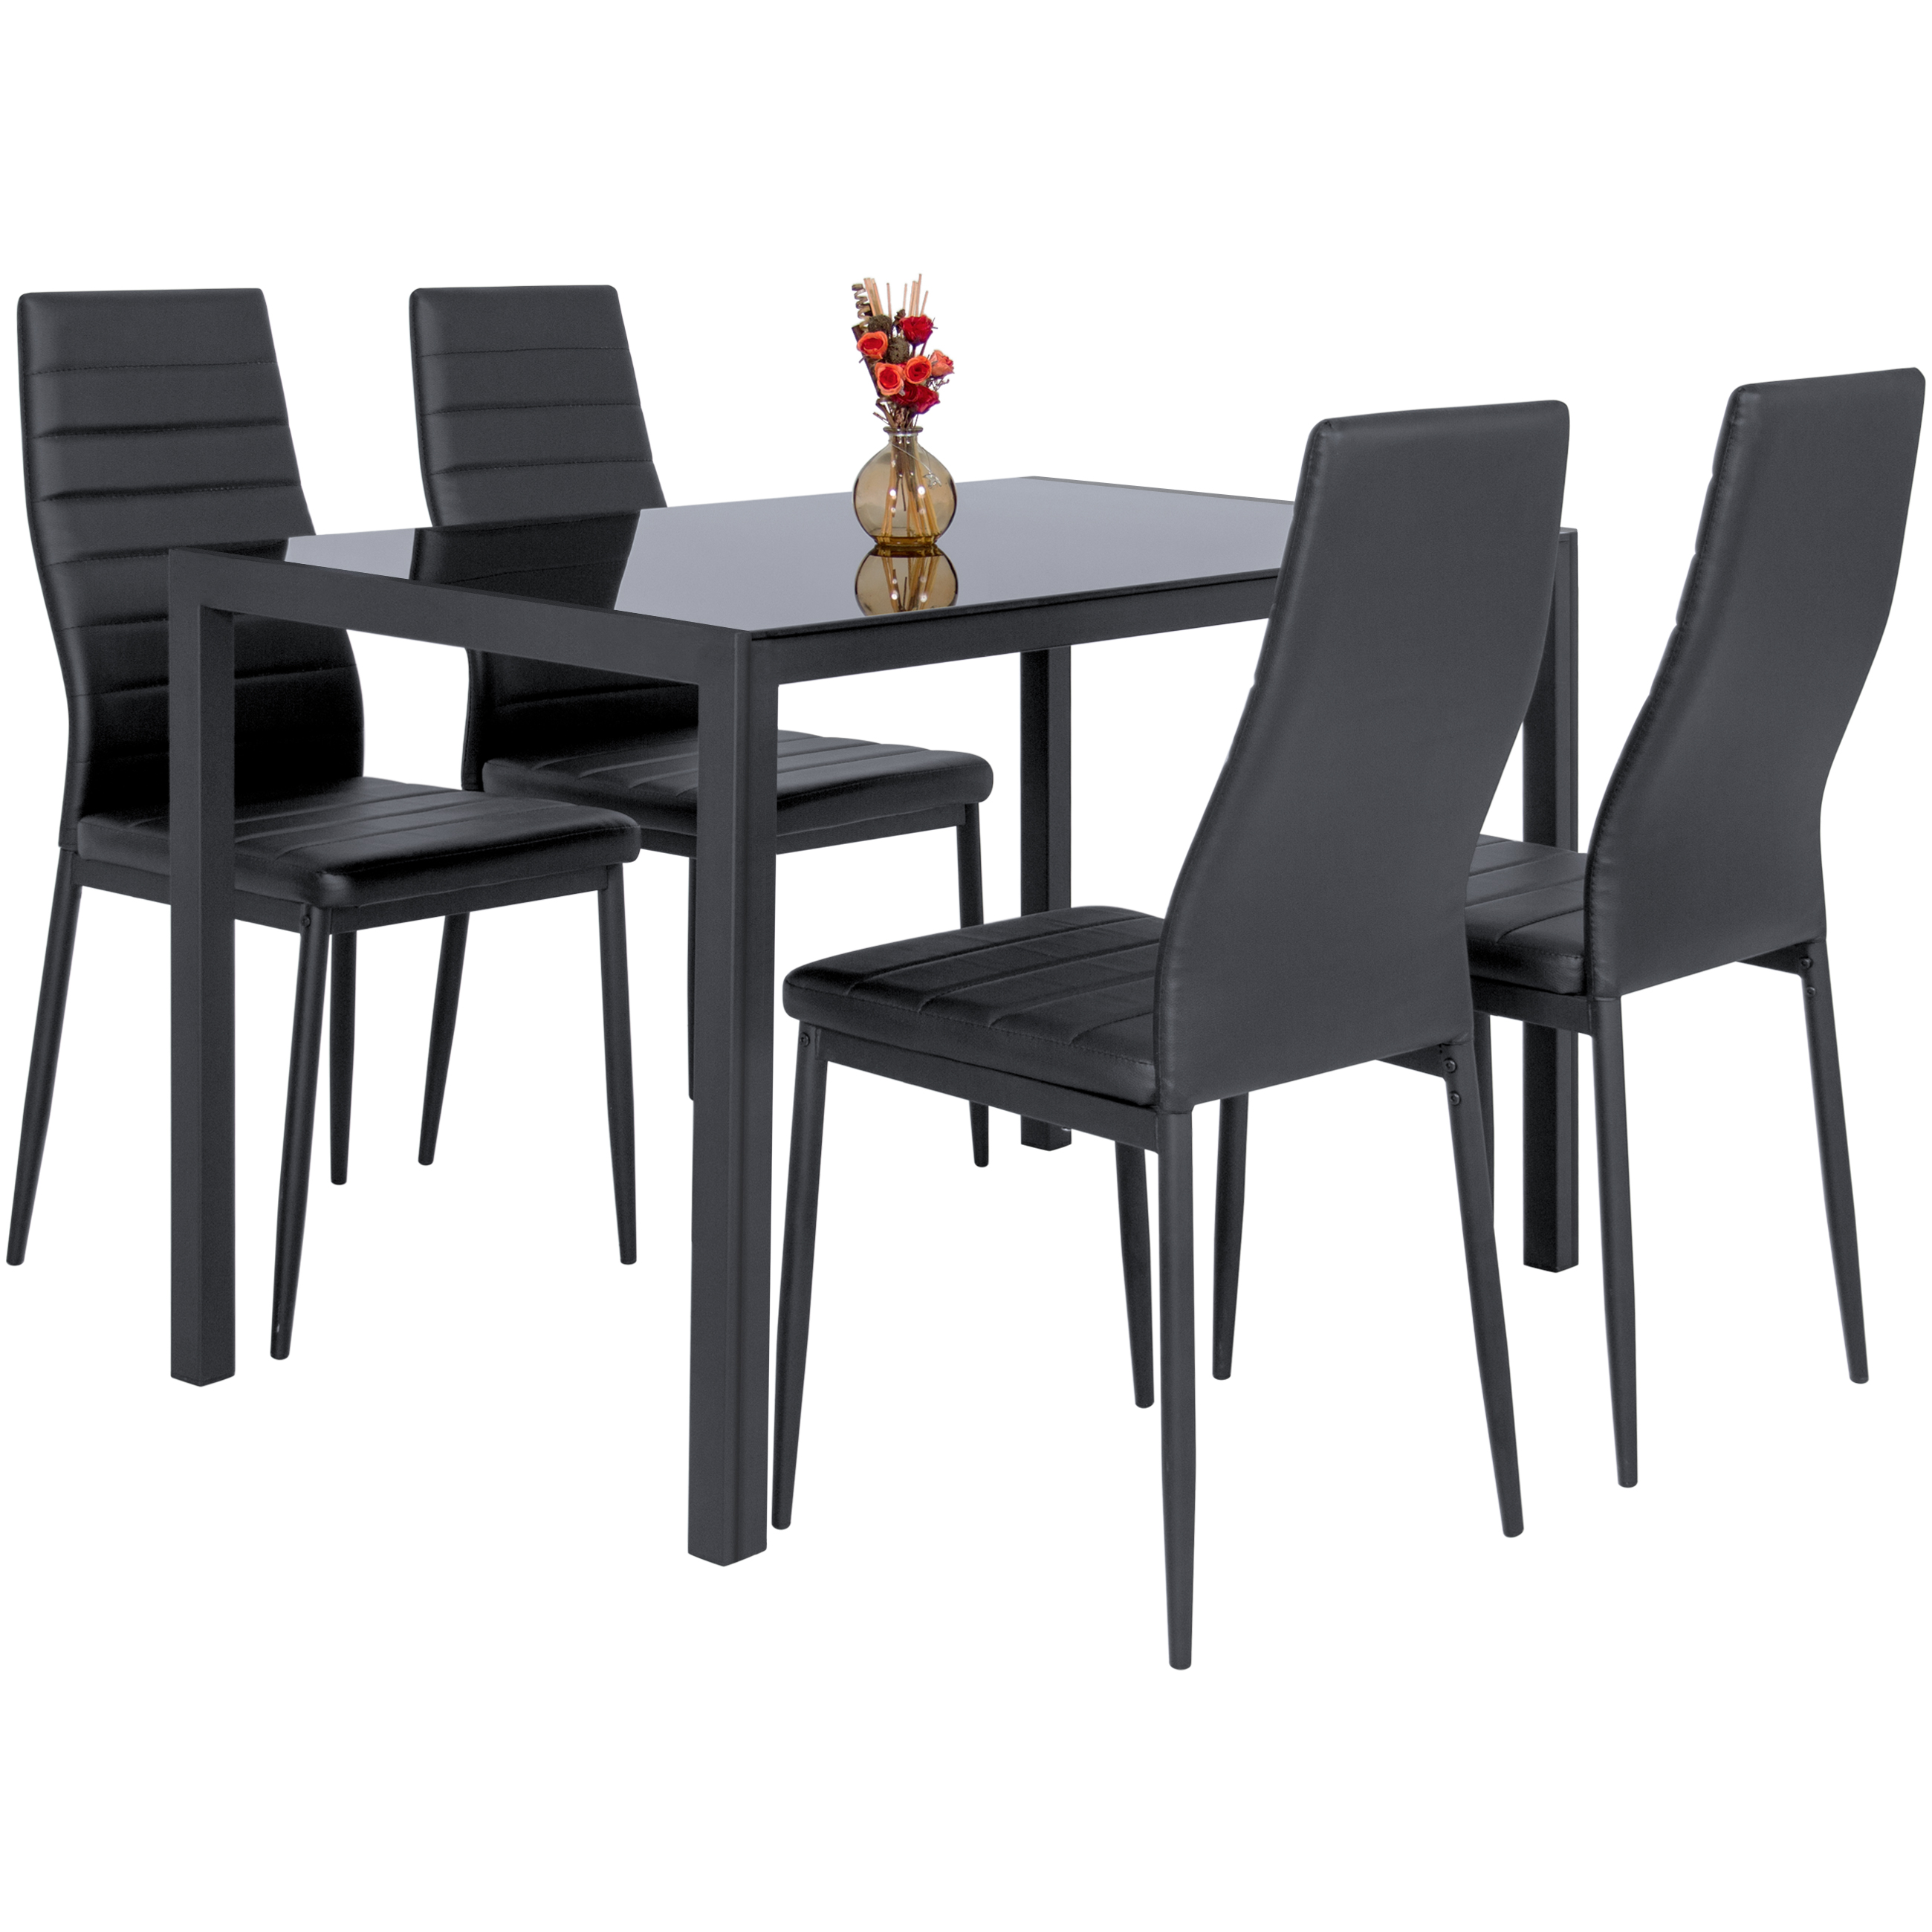 5 Piece Kitchen Dining Table Set W Glass Top And 4 Leather